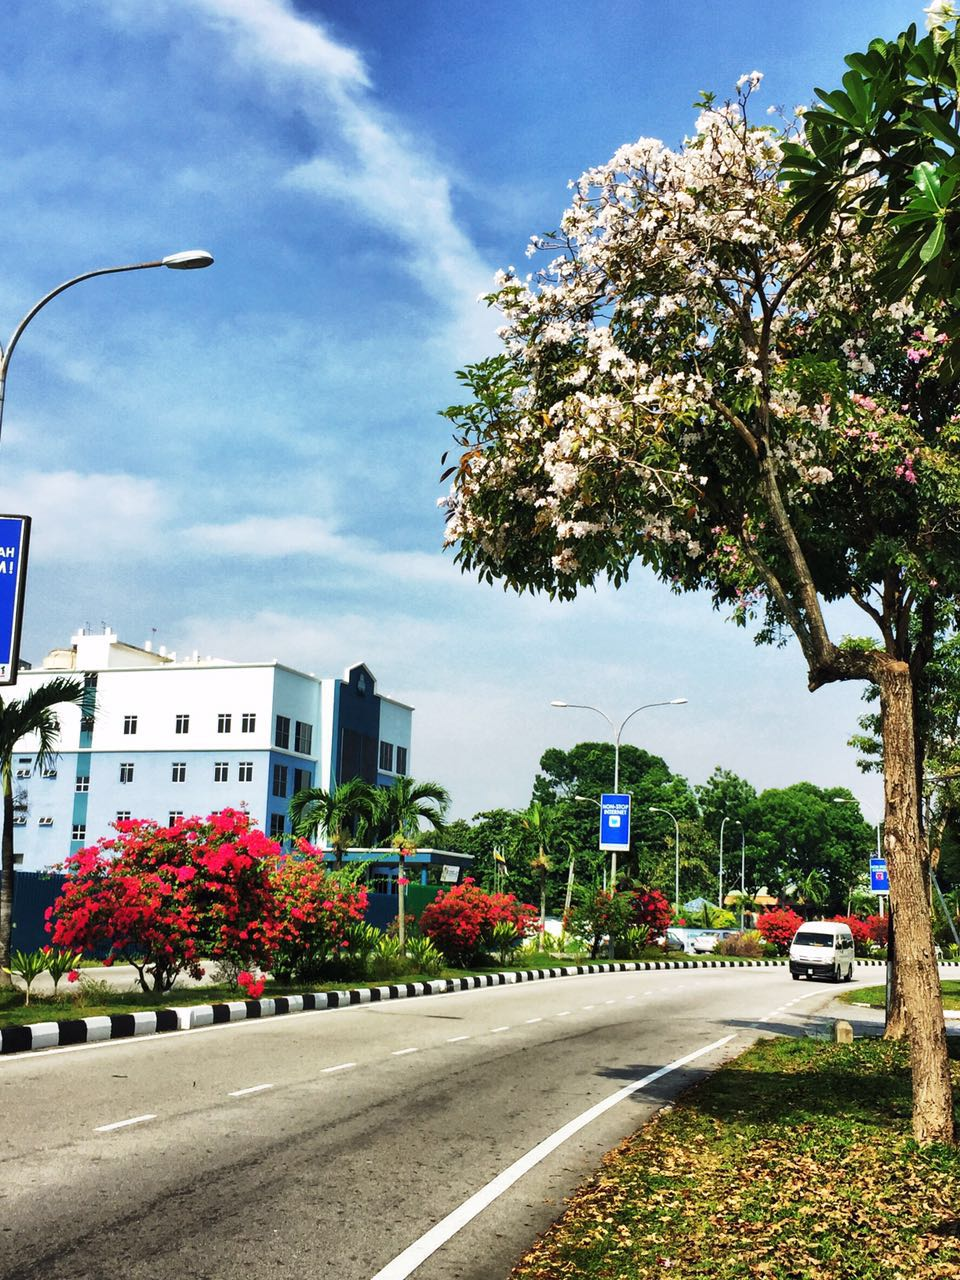 2. Tecoma trees enhance the landscape of Ipoh City